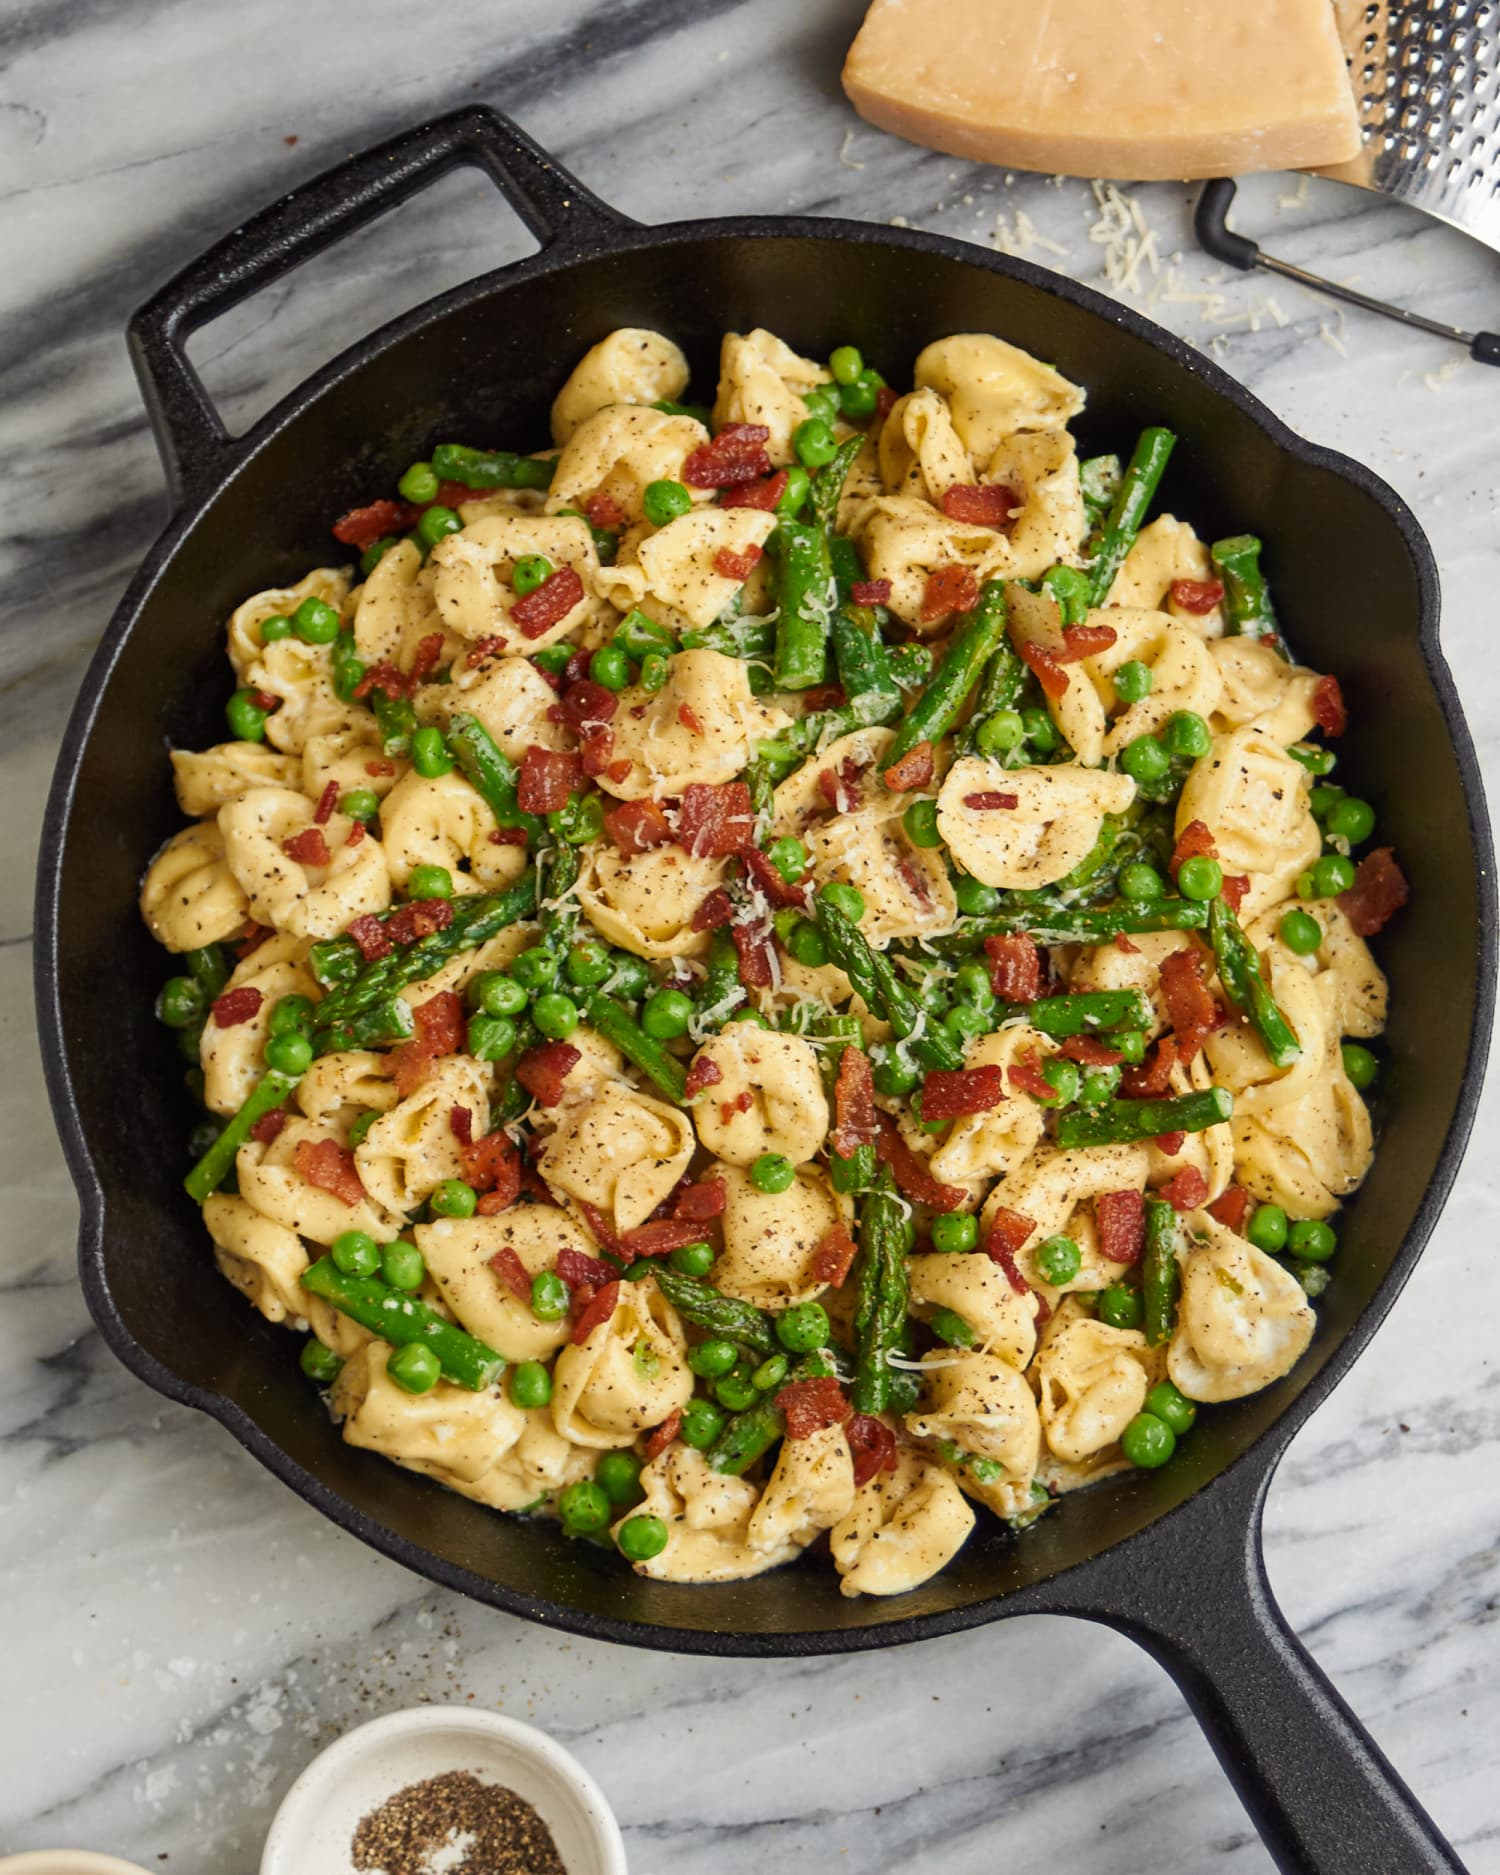 This One-Skillet Tortellini Dinner Is a Must-Make for Spring